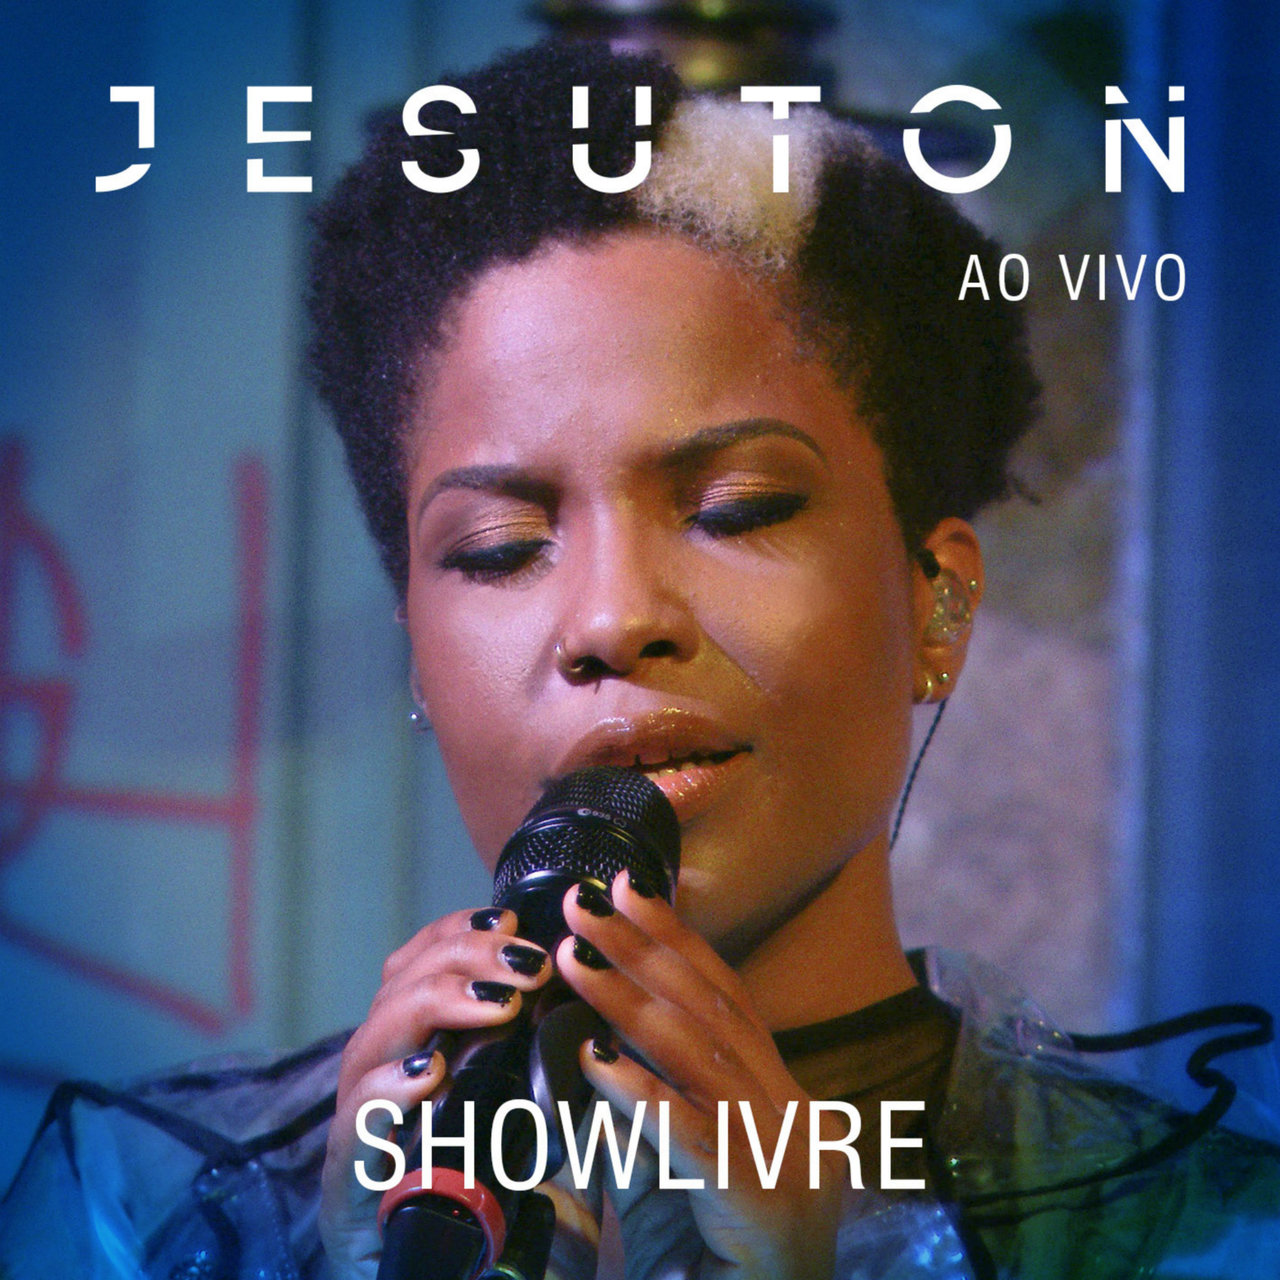 Showlivre (Ao Vivo)